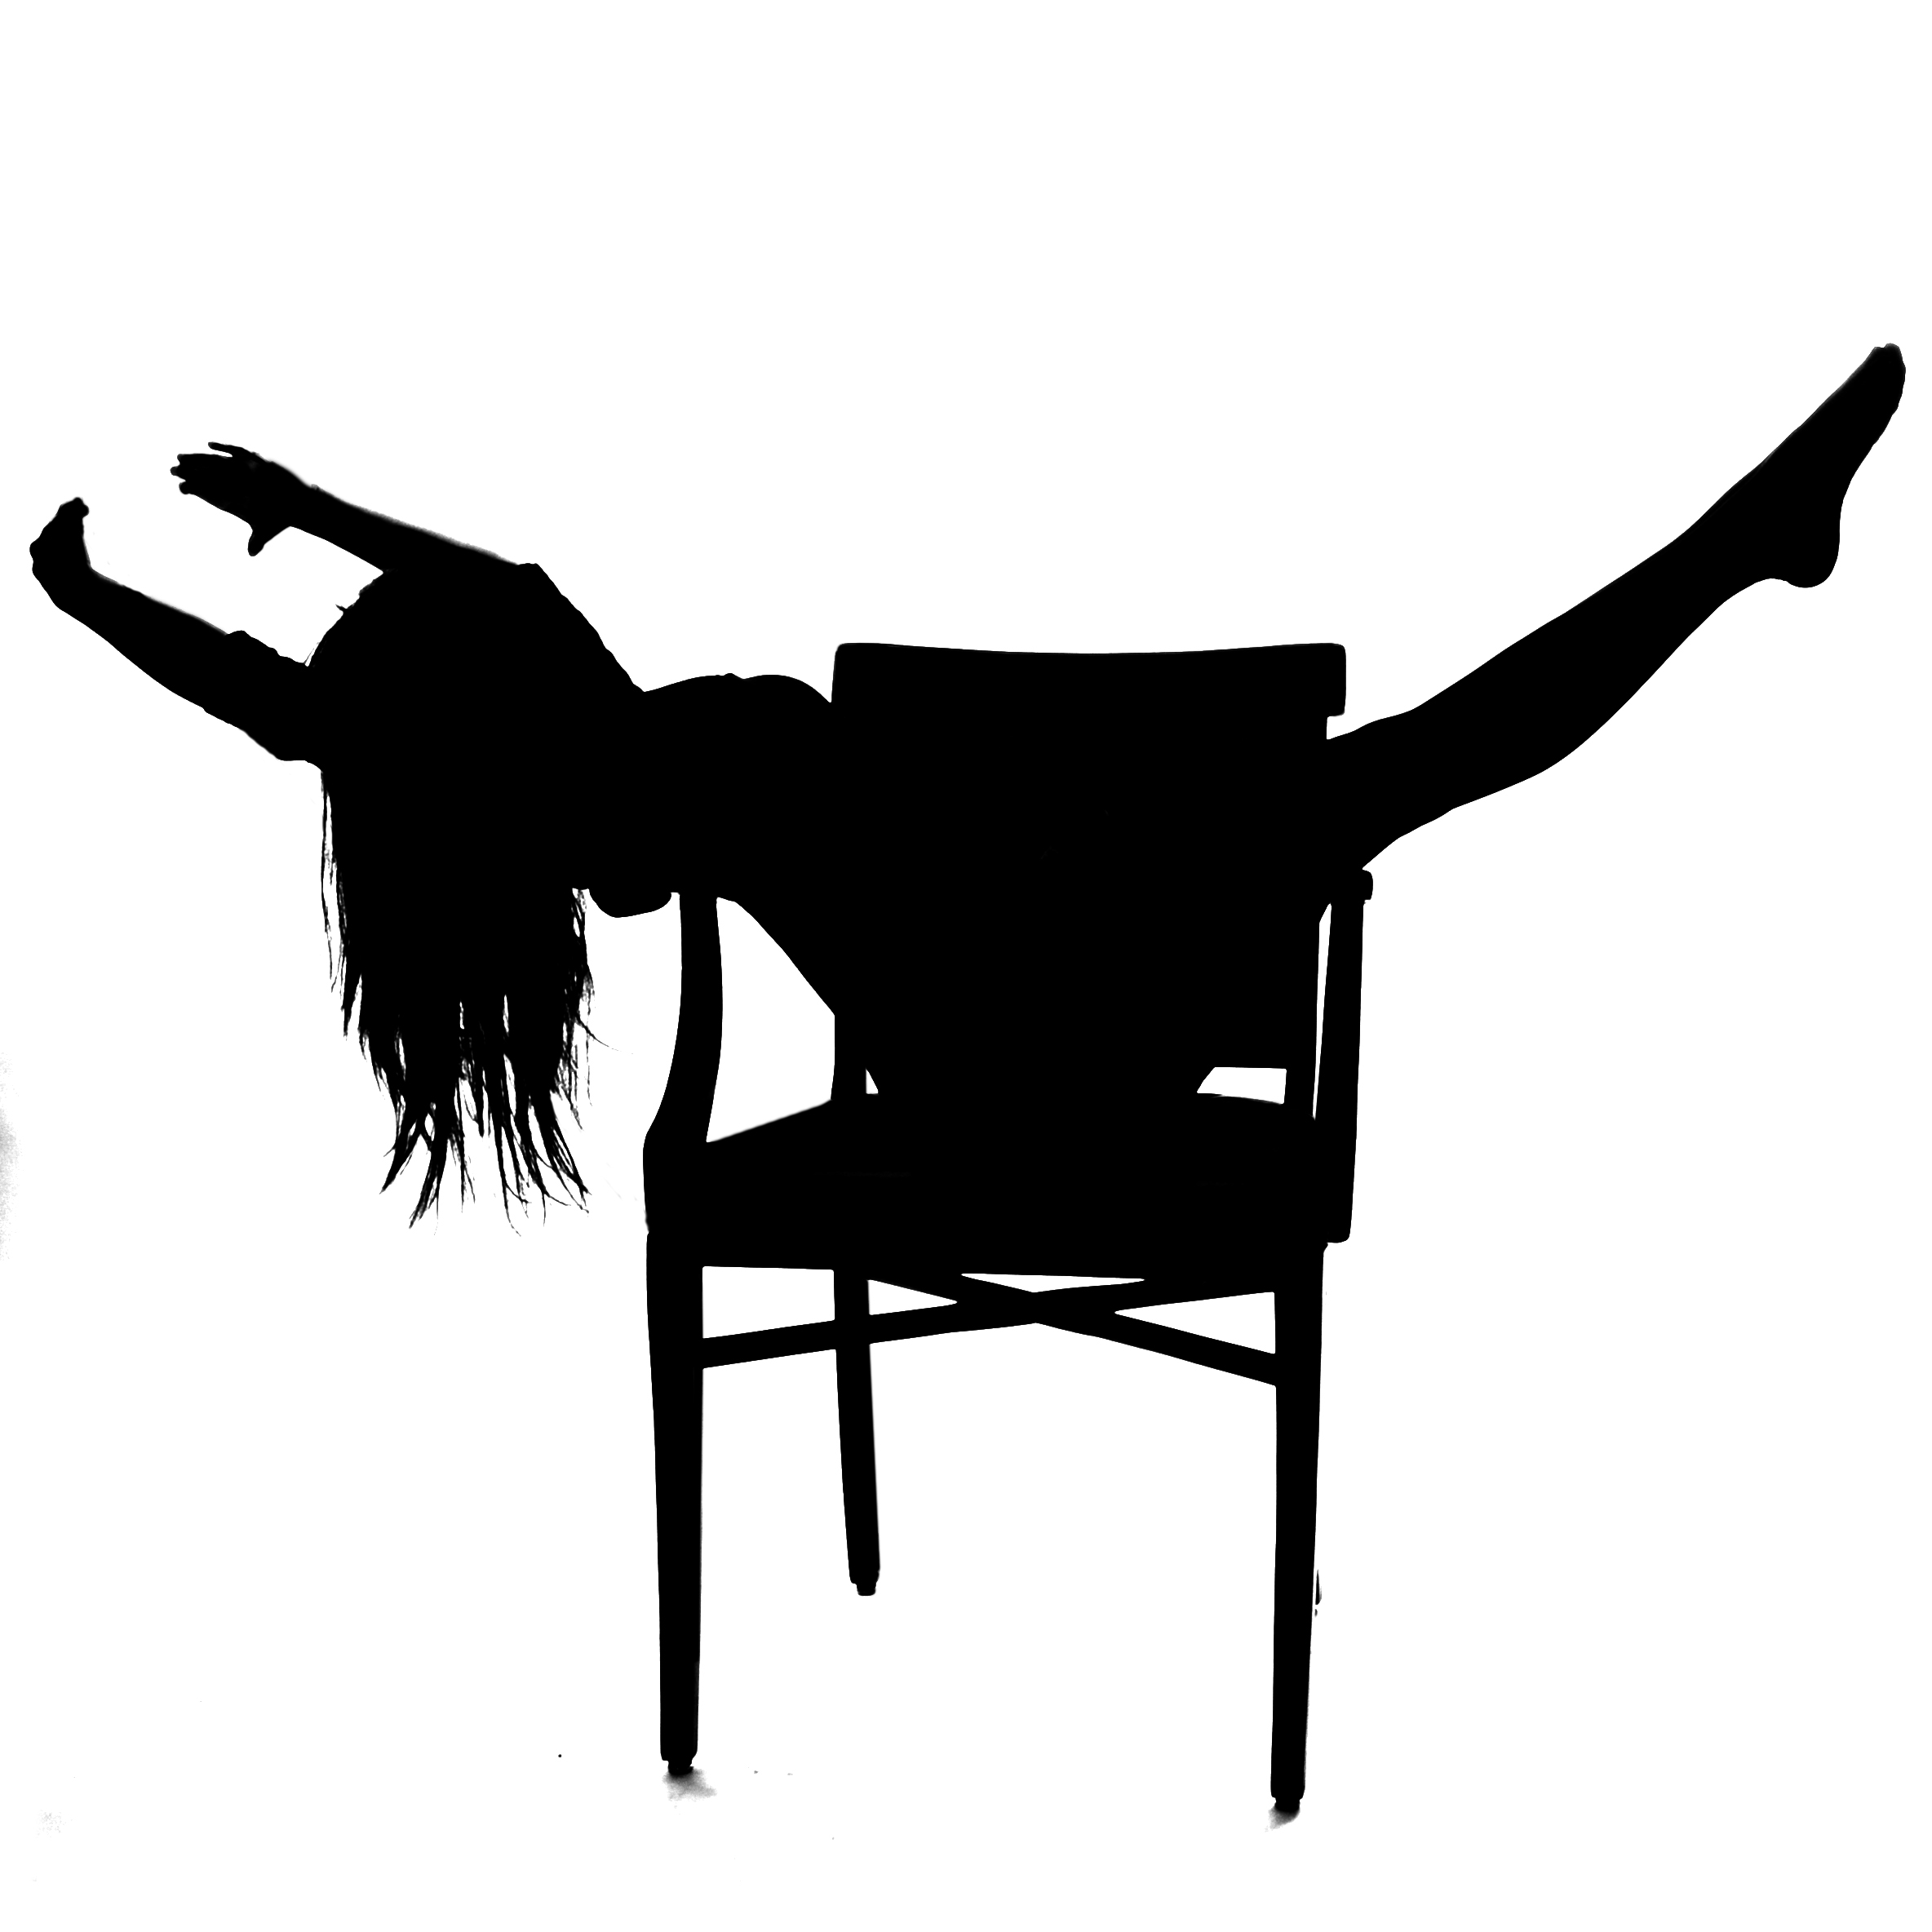 Dance silhouette 9 | Flickr - Photo Sharing!